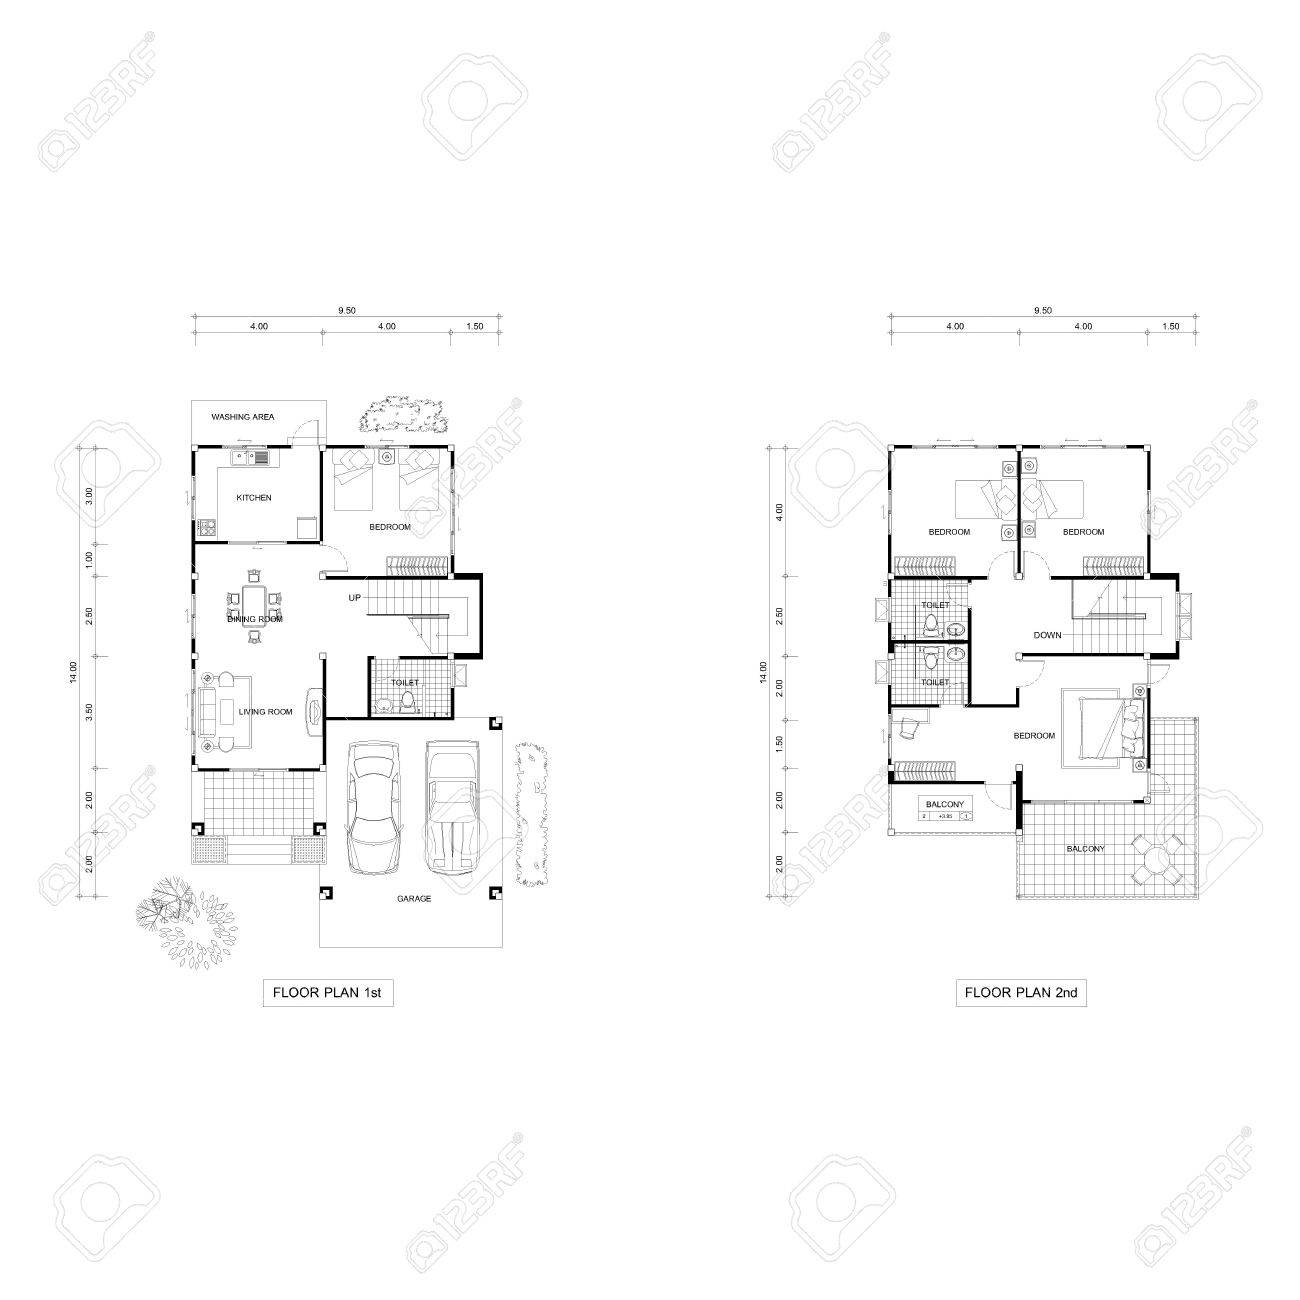 Architecture Plan Drawing Design House, Plans Downstairs And.. Stock on luther house, numbers house, hidden house, haven house, united kingdom house, poirot house, toast house, copper house, the mill house, hunted house, vikings house, arrow house, monroe house, the village house, sherlock holmes house, slit house, portlandia house, the big bang theory house, revenge house, sleepy hollow house,